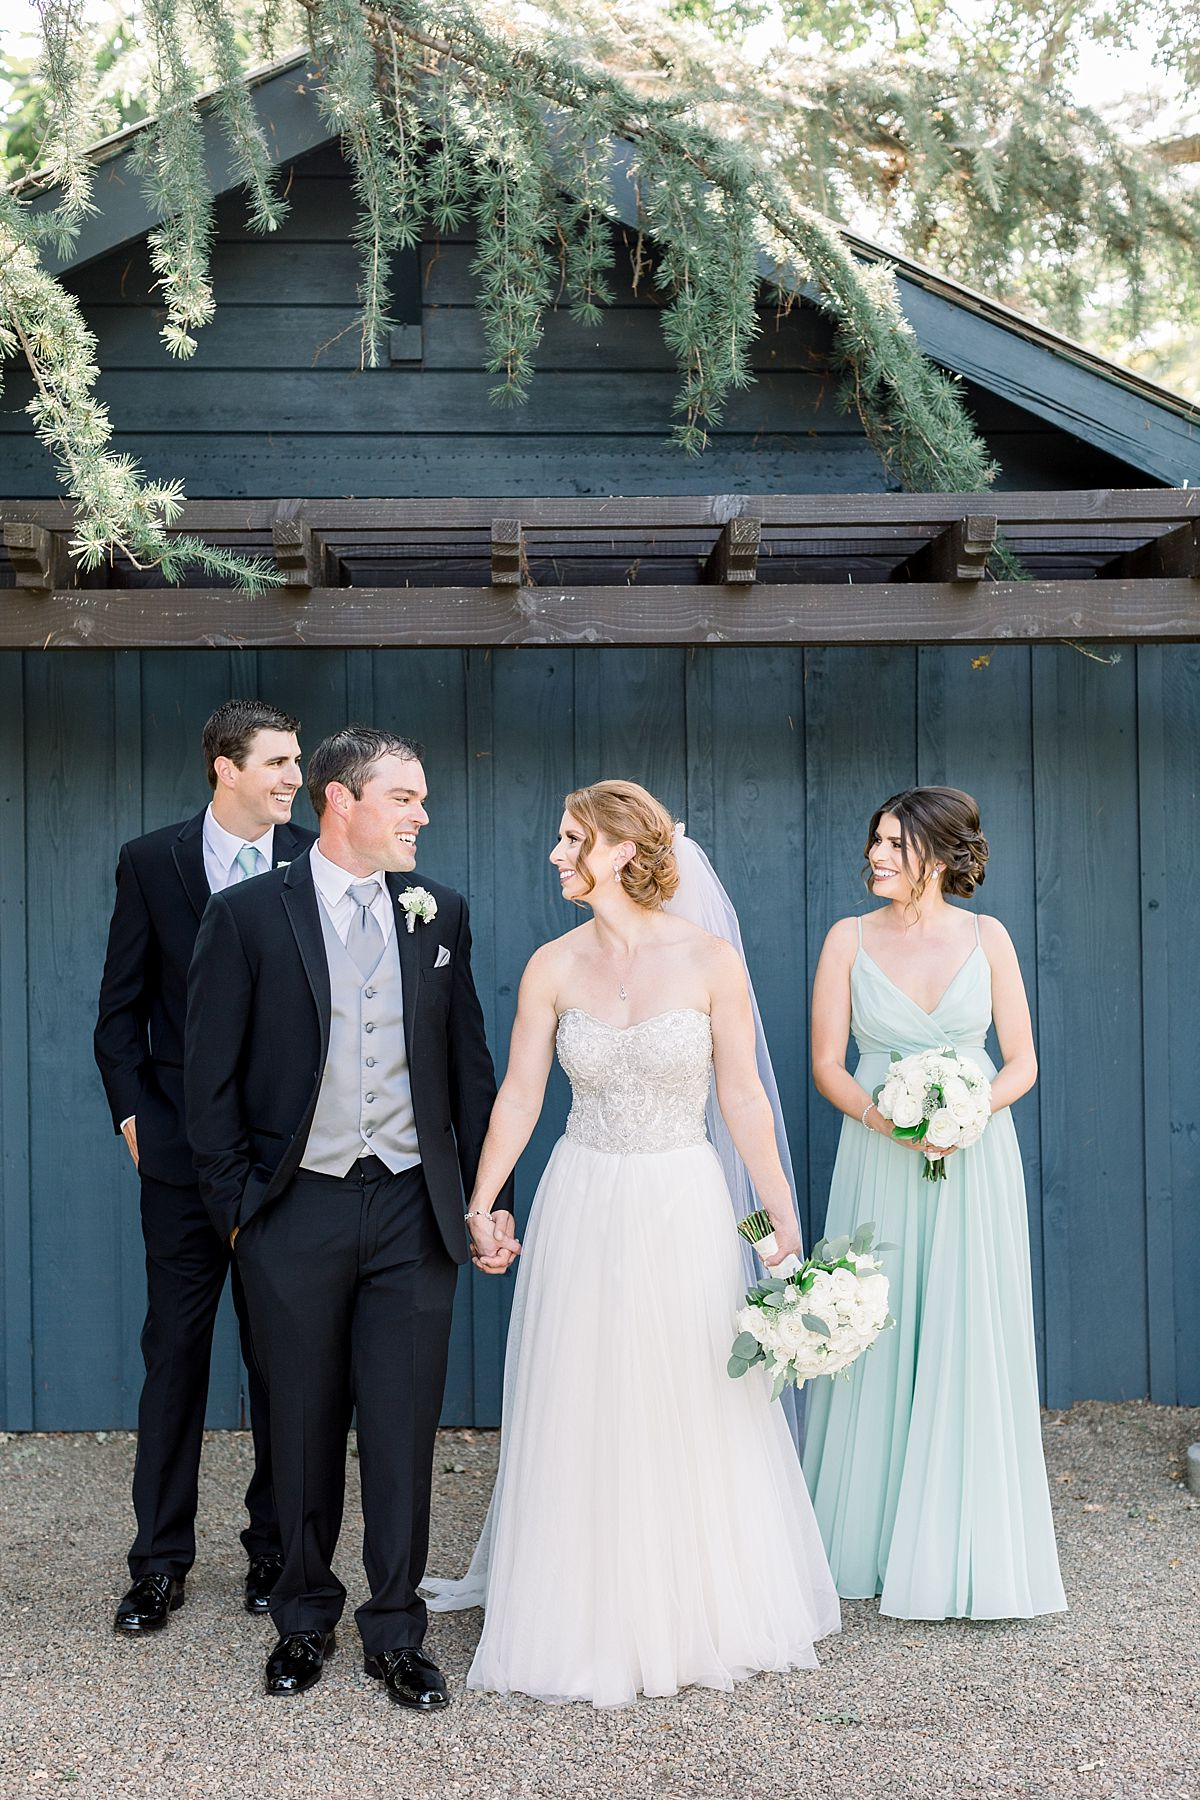 Wine and Roses Wedding - Wine and Roses Lodi Wedding Photographer - Sacramento Film Wedding Photographer - Ashley Baumgartner - Sacramento Luxury Wedding Photographer_0021.jpg